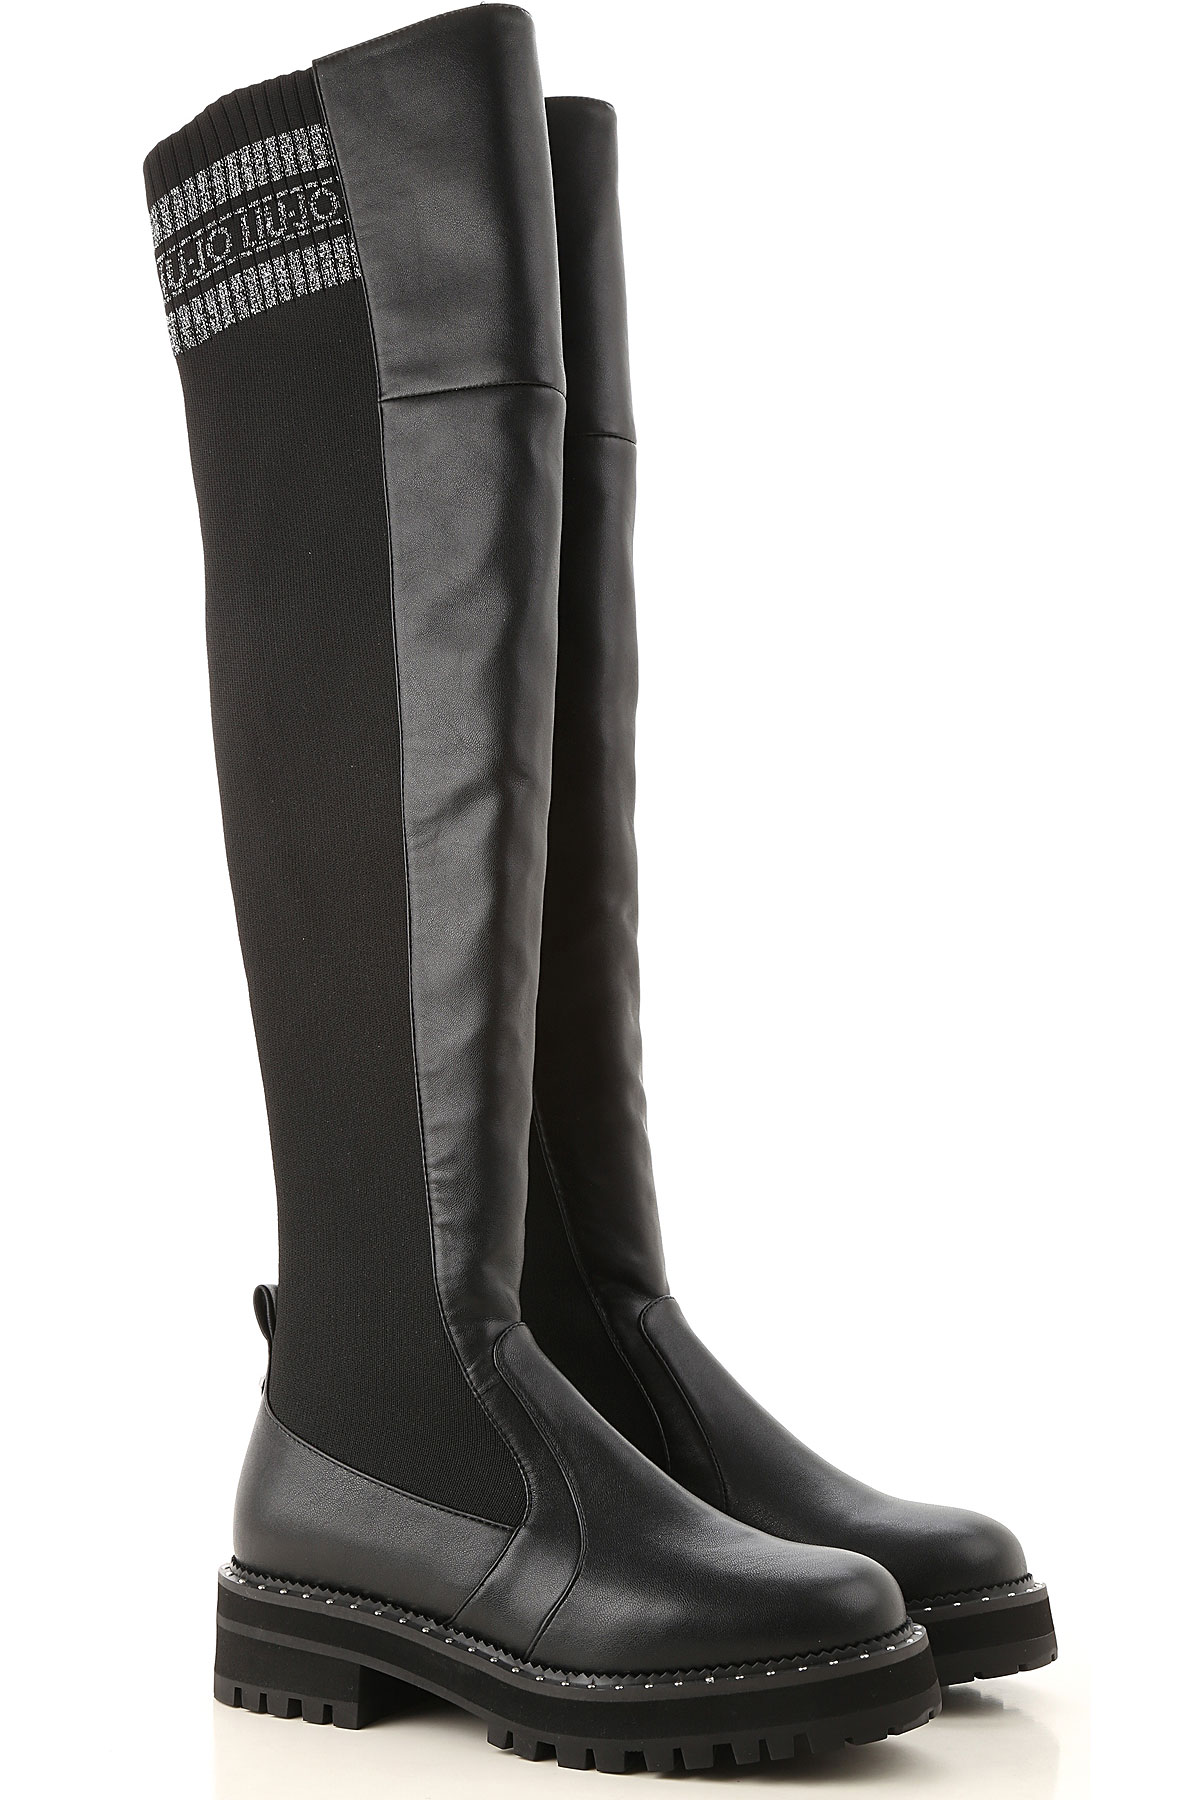 Liu Jo Boots for Women, Booties On Sale, Black, Eco Leather, 2019, 10 5 9